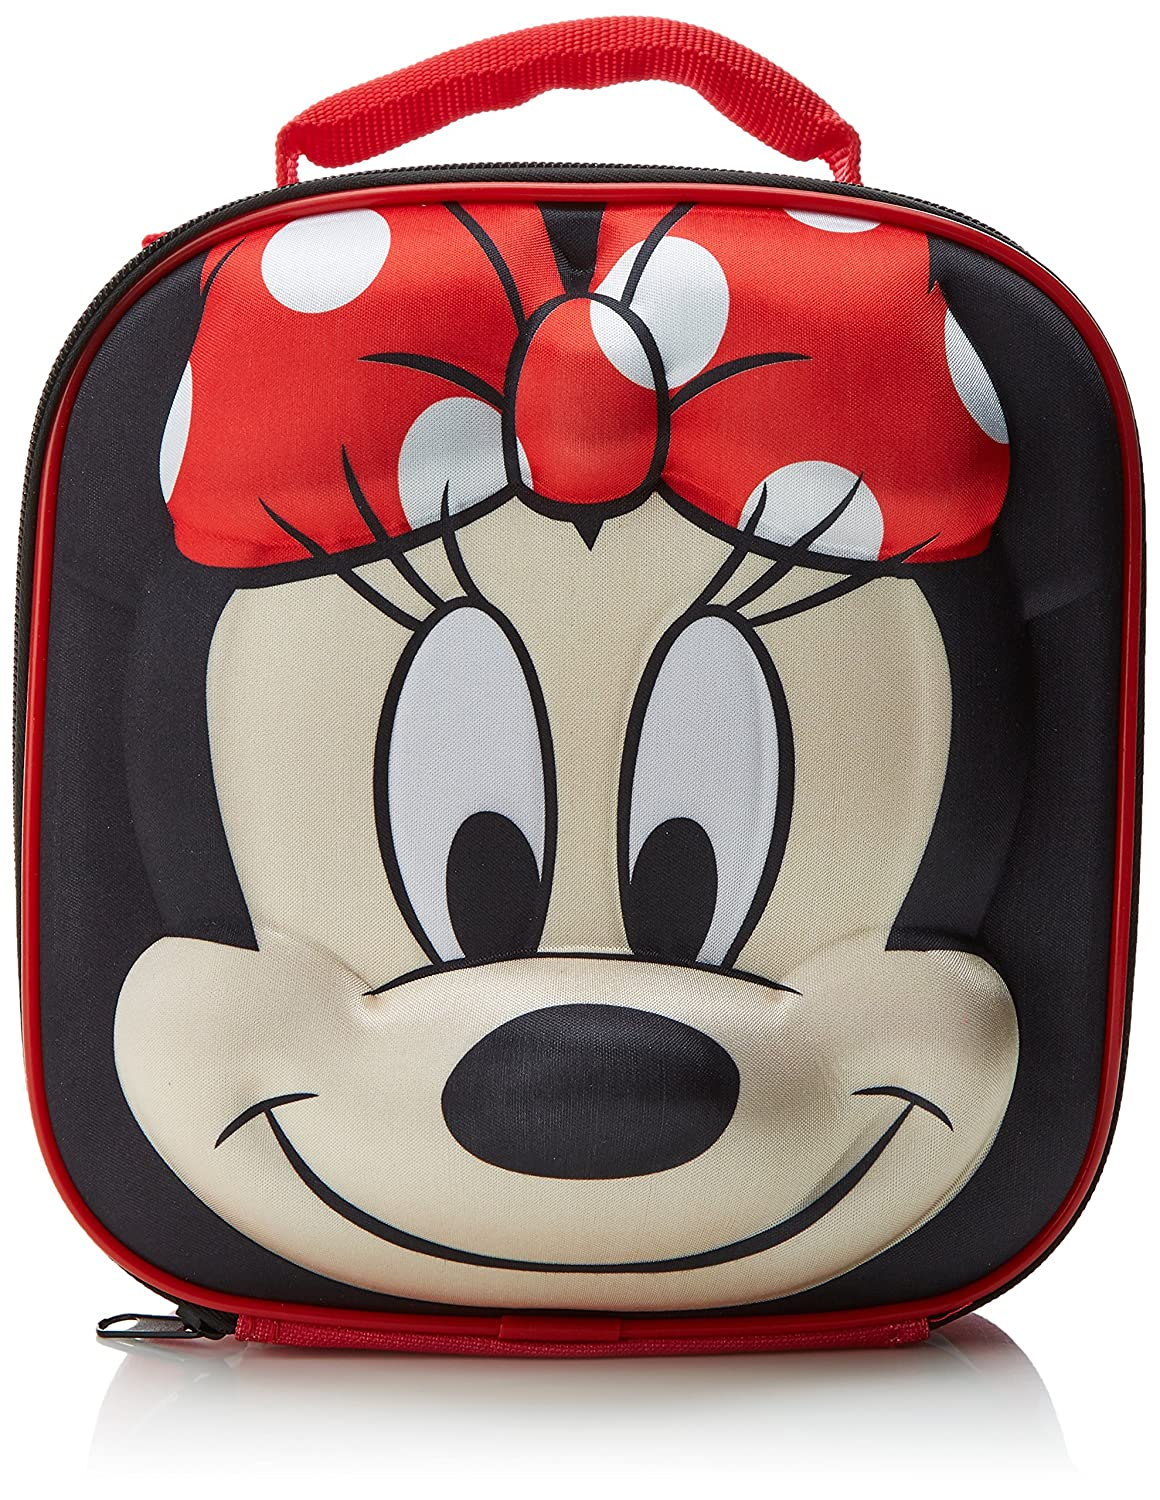 Elemed 59553 Disney Character 3D Insulated Bag Disney Minnie Mouse 8412497595532